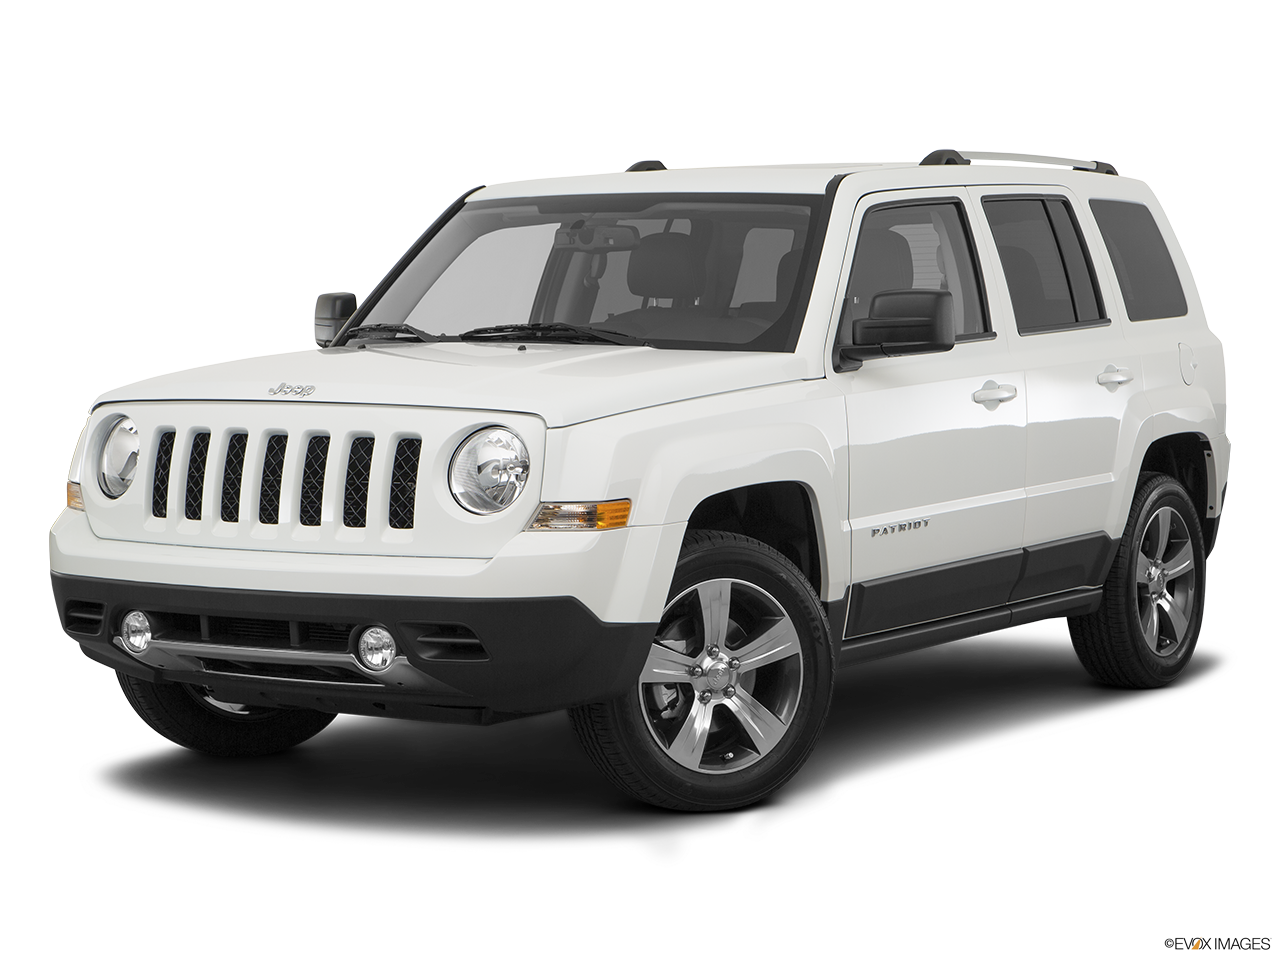 Test Drive A 2017 Jeep Patriot at Nashville Chrysler Dodge Jeep RAM in Antioch